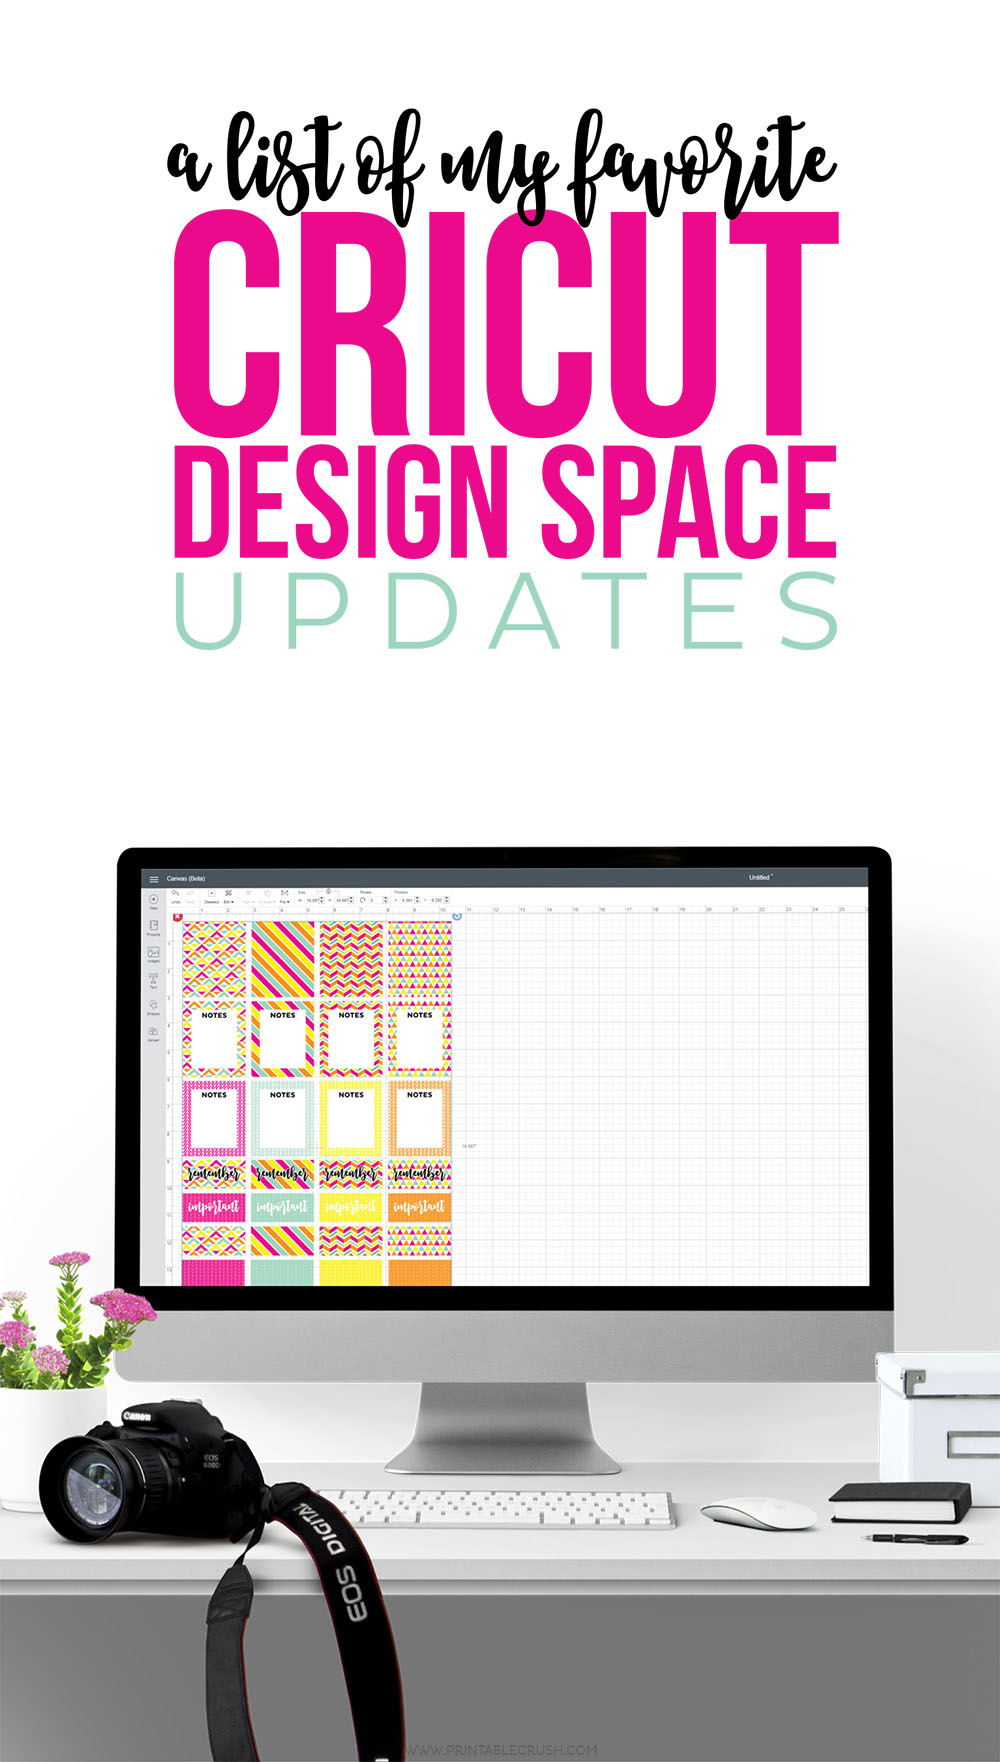 The new design space is AMAZING and I've listed my FAVORITE Cricut Design Space Updates...the Cricut Explore just got WAY better!